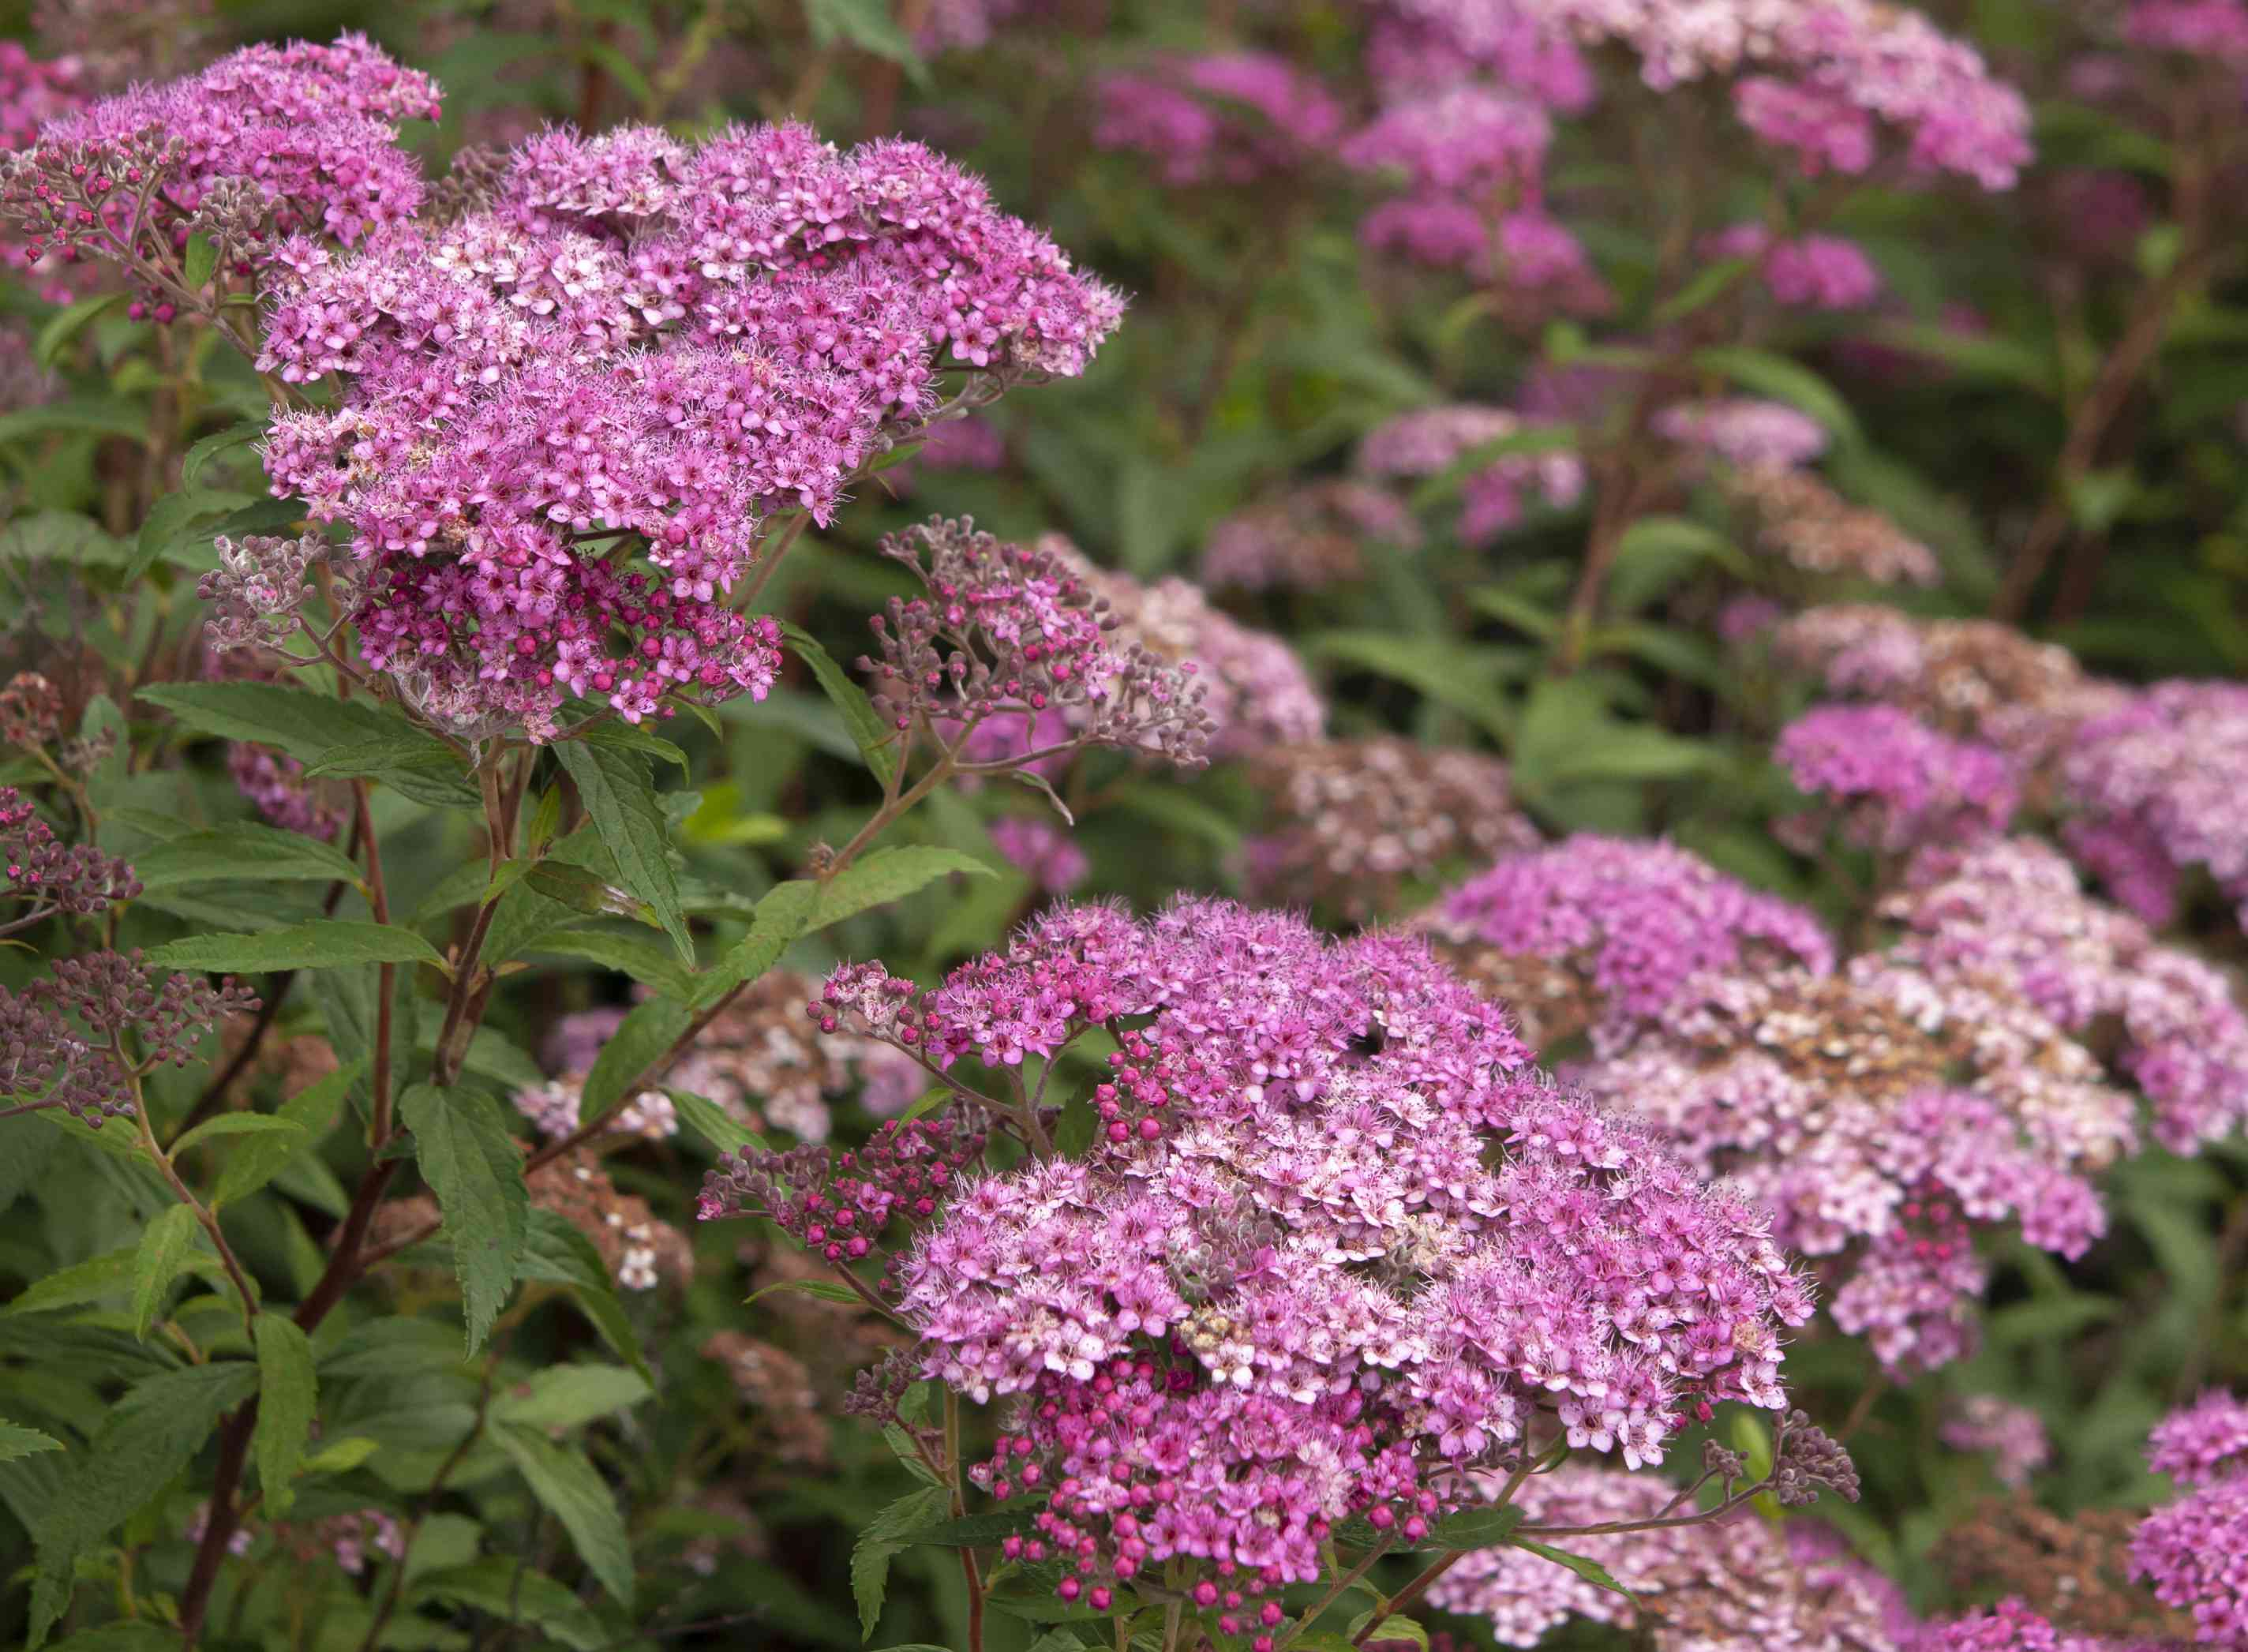 Neon flash spirea shrub with deep and light pink flower clusters on branches with leaves